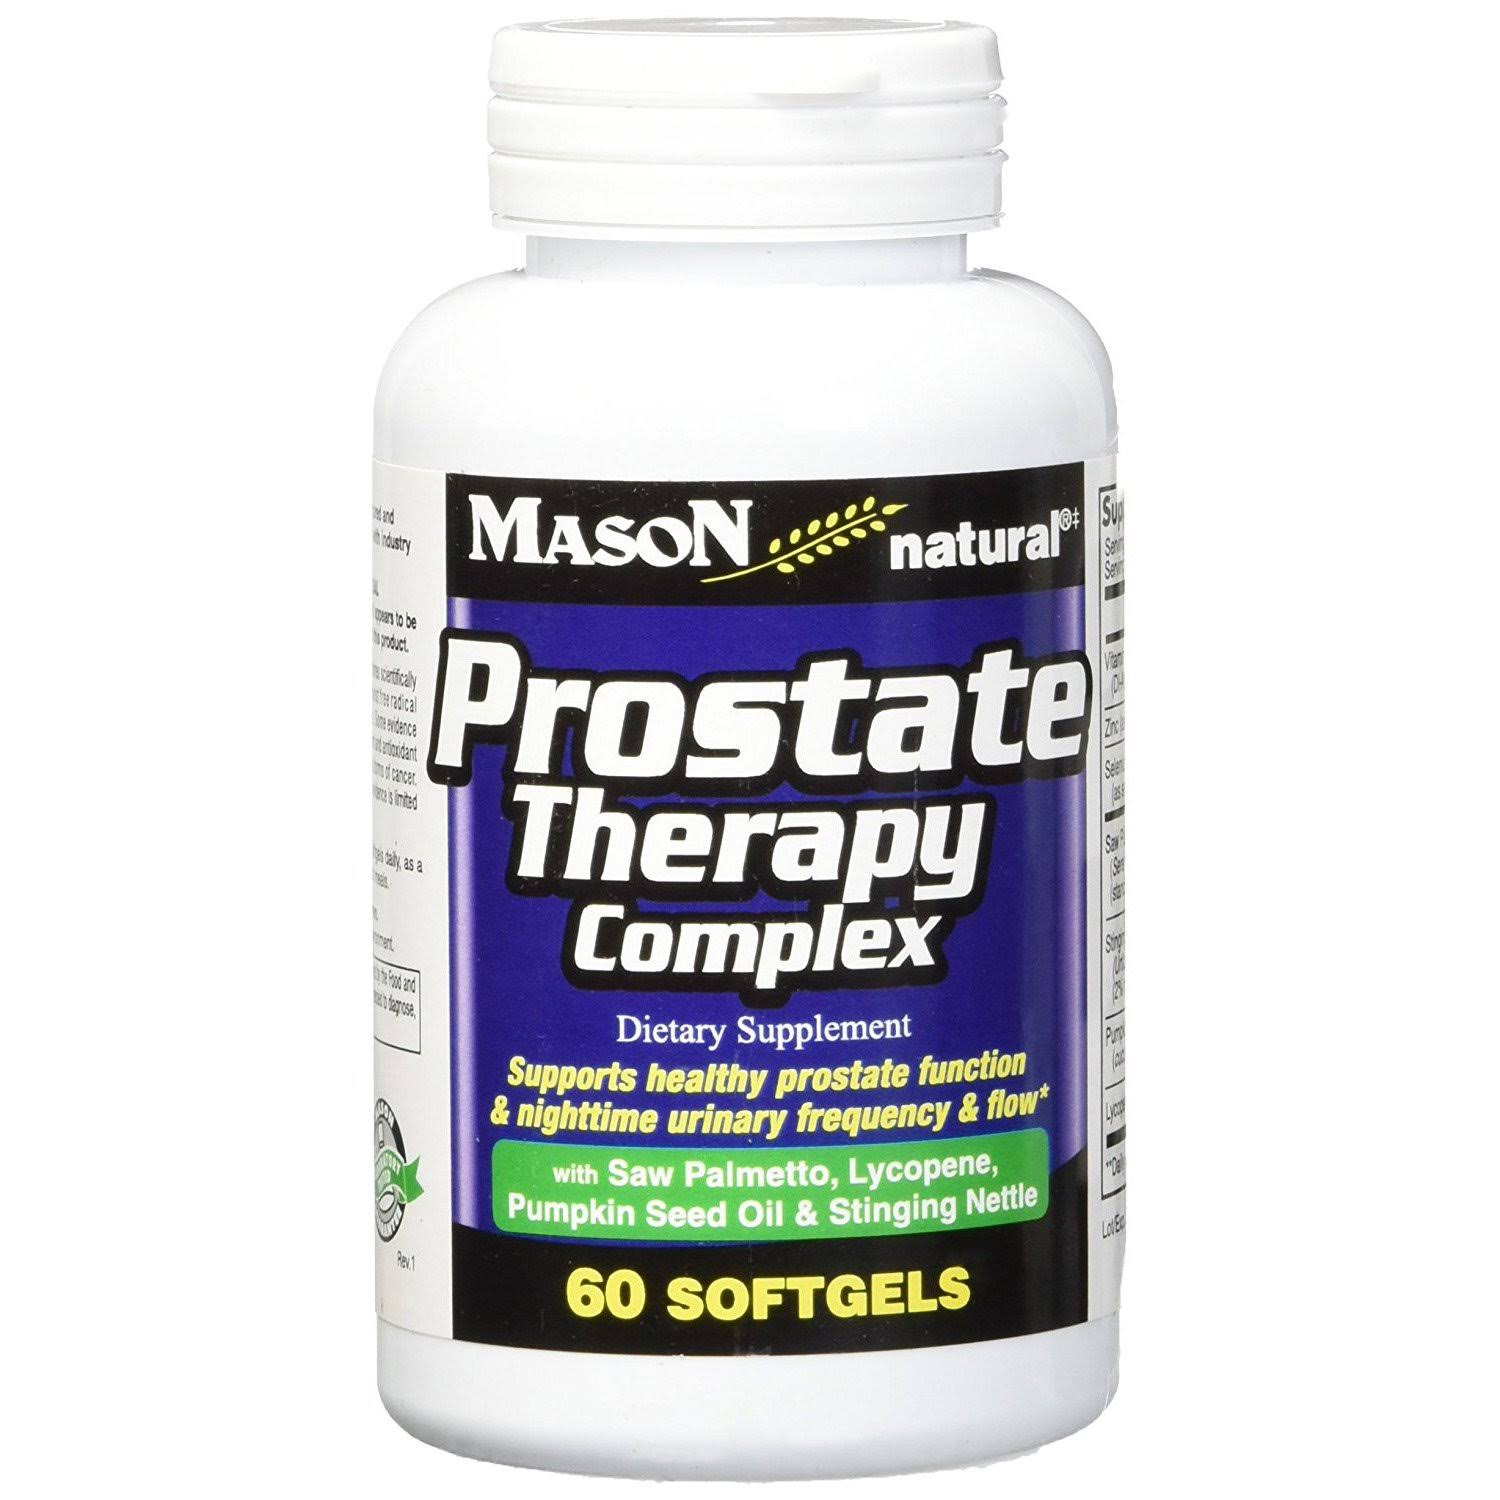 Mason Natural Prostate Therapy Complex Dietary Supplement - 60 Softgels